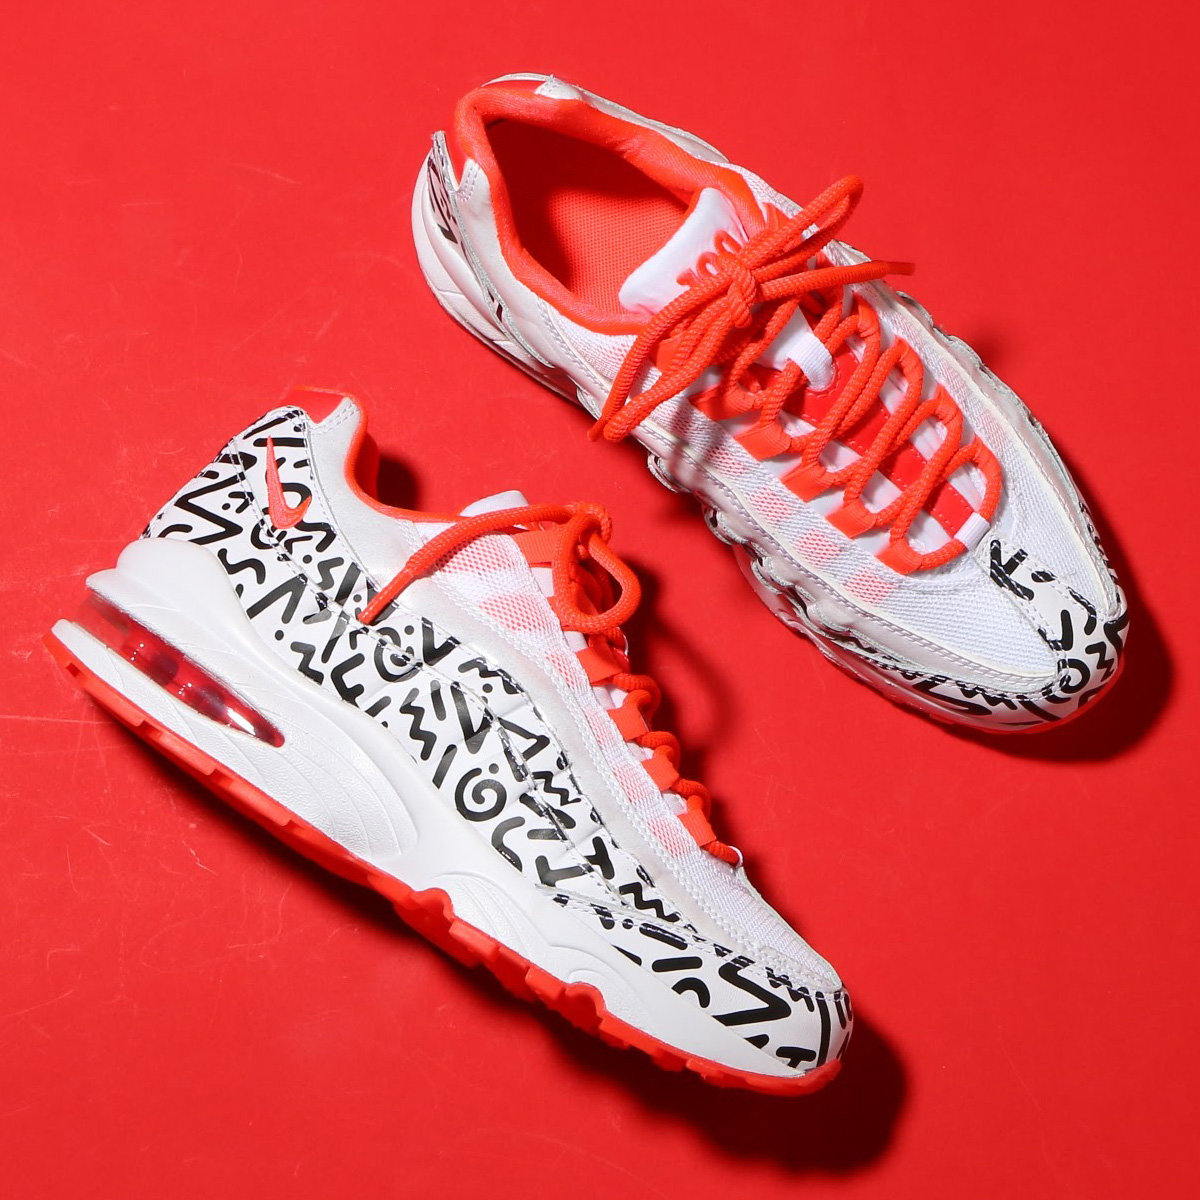 NIKE AIR MAX 95 QS (GS) (ナイキ エア マックス 95 QS GS) WHITE/WHITE-BLACK-BRIGHT CRIMSON【ガールズ スニーカー】18SP-S